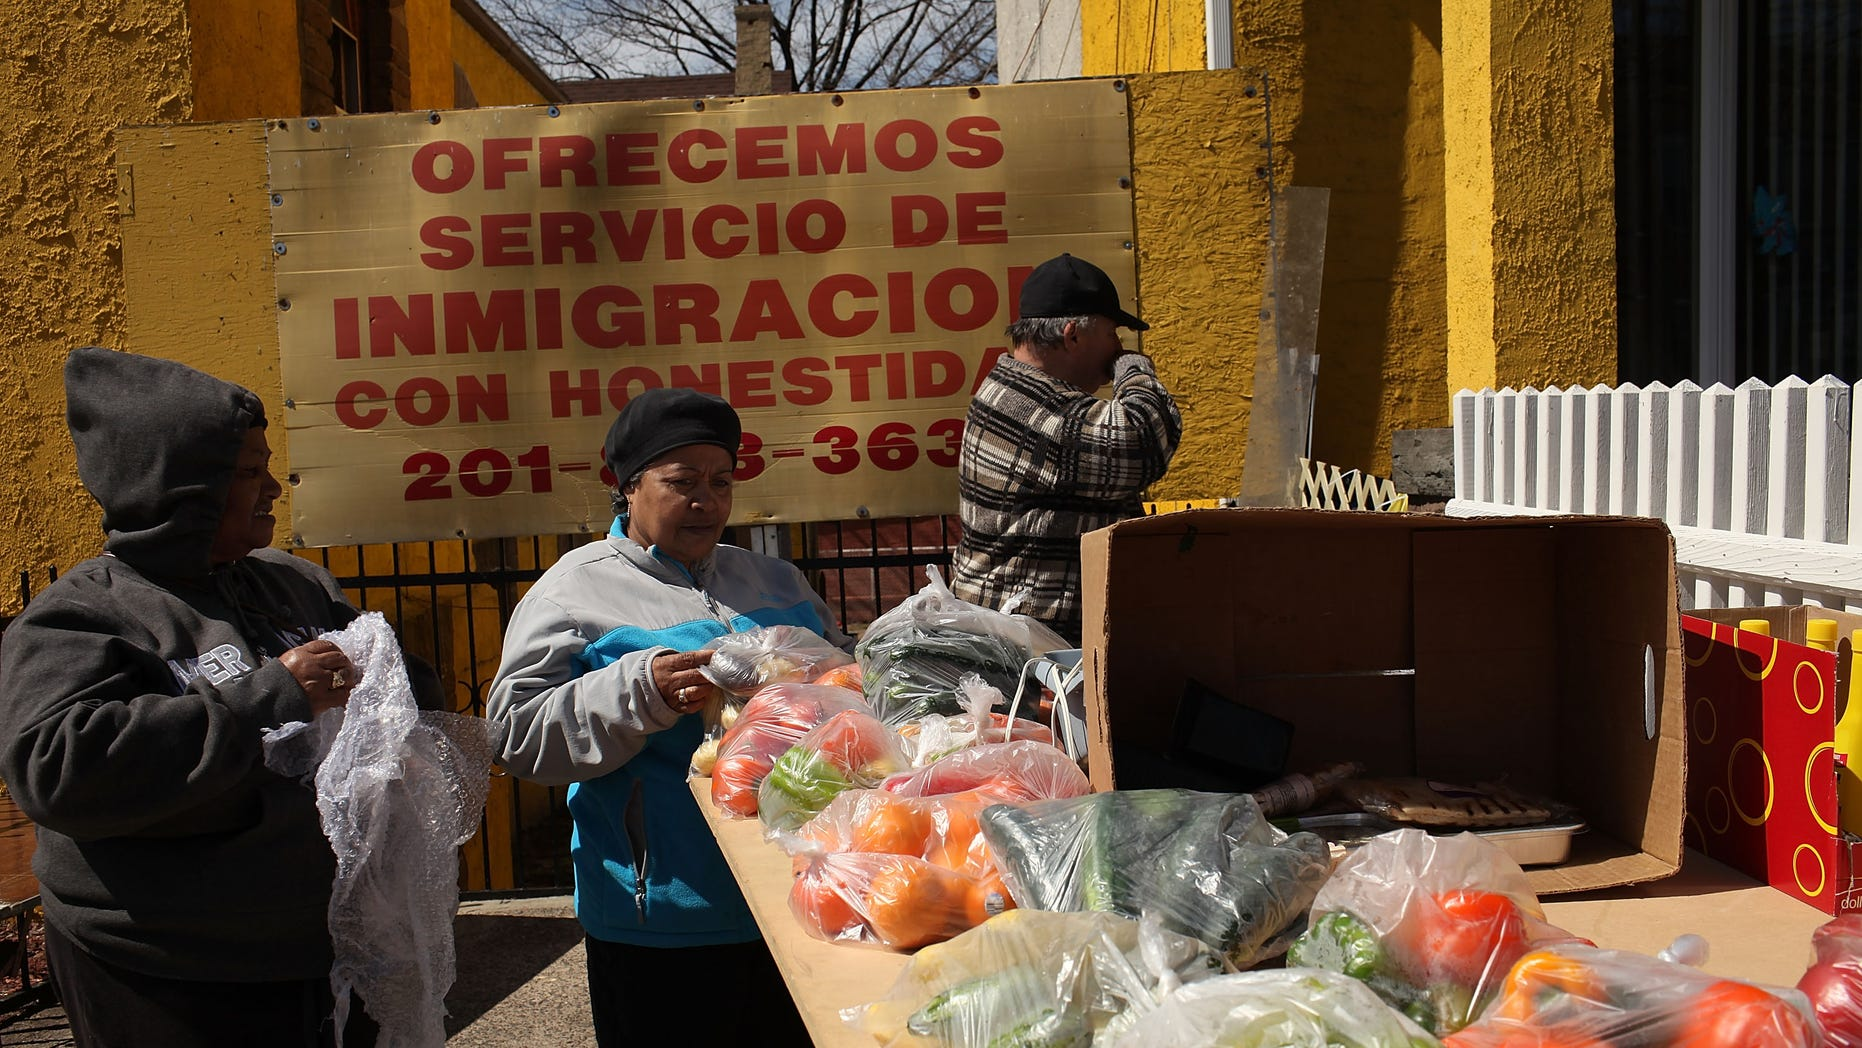 Hispanic women shop at a farmers market outside of a Latino church in Union City, New Jersey.